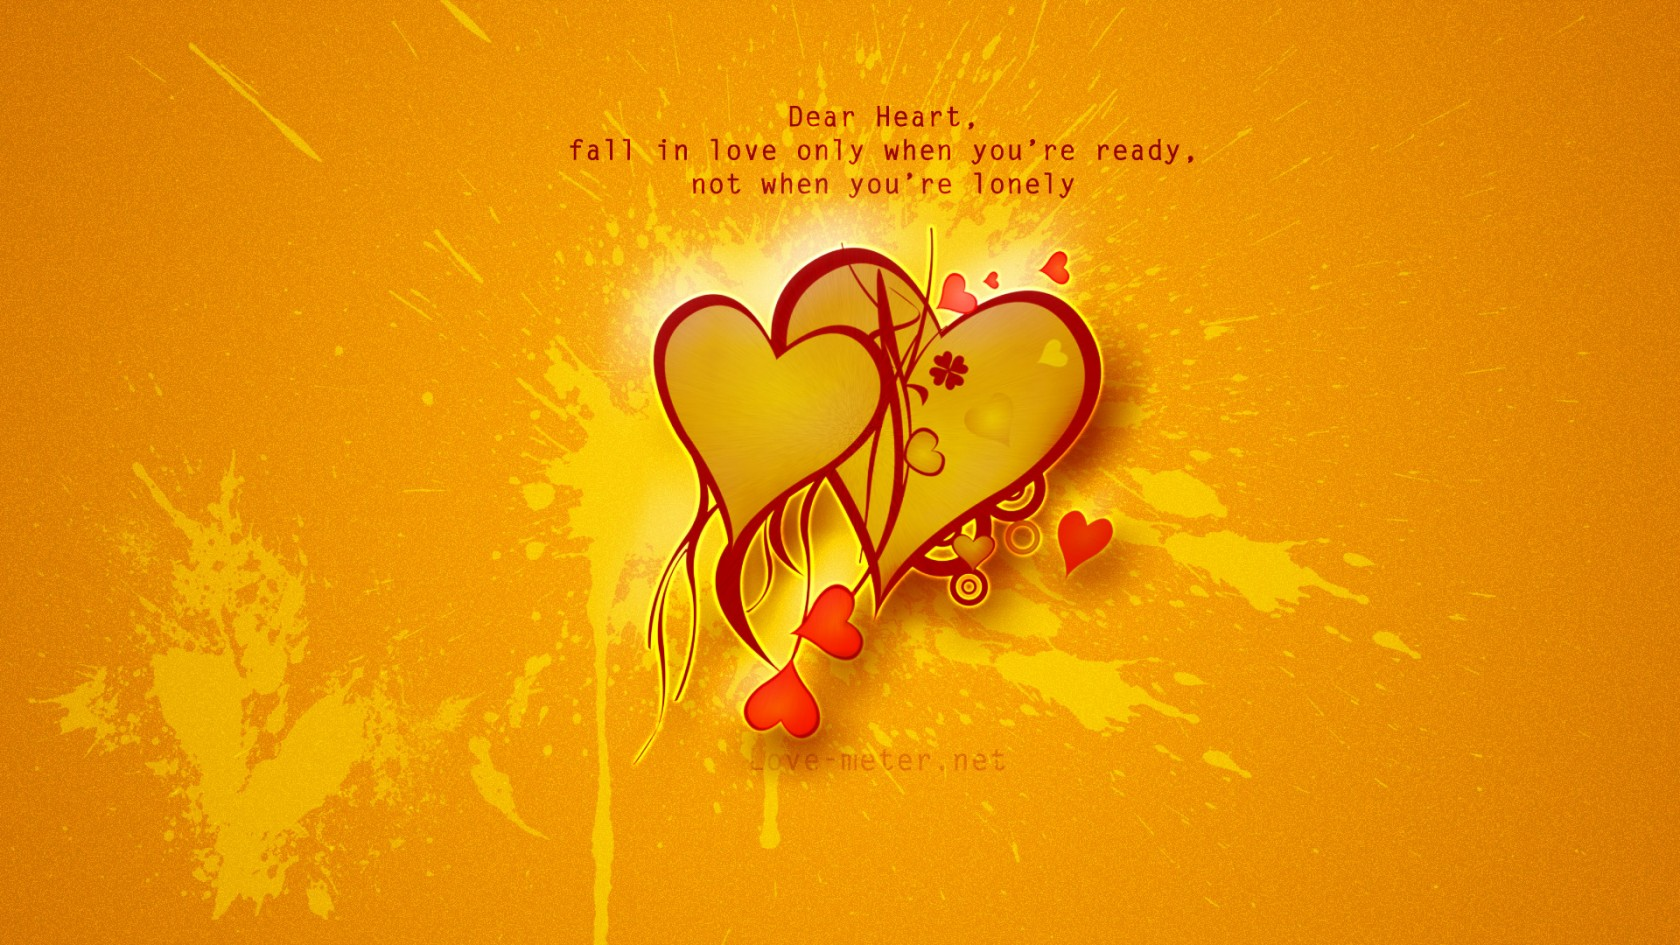 Fall In Love Quotes HD Wallpaper of Love   hdwallpaper2013com 1680x945